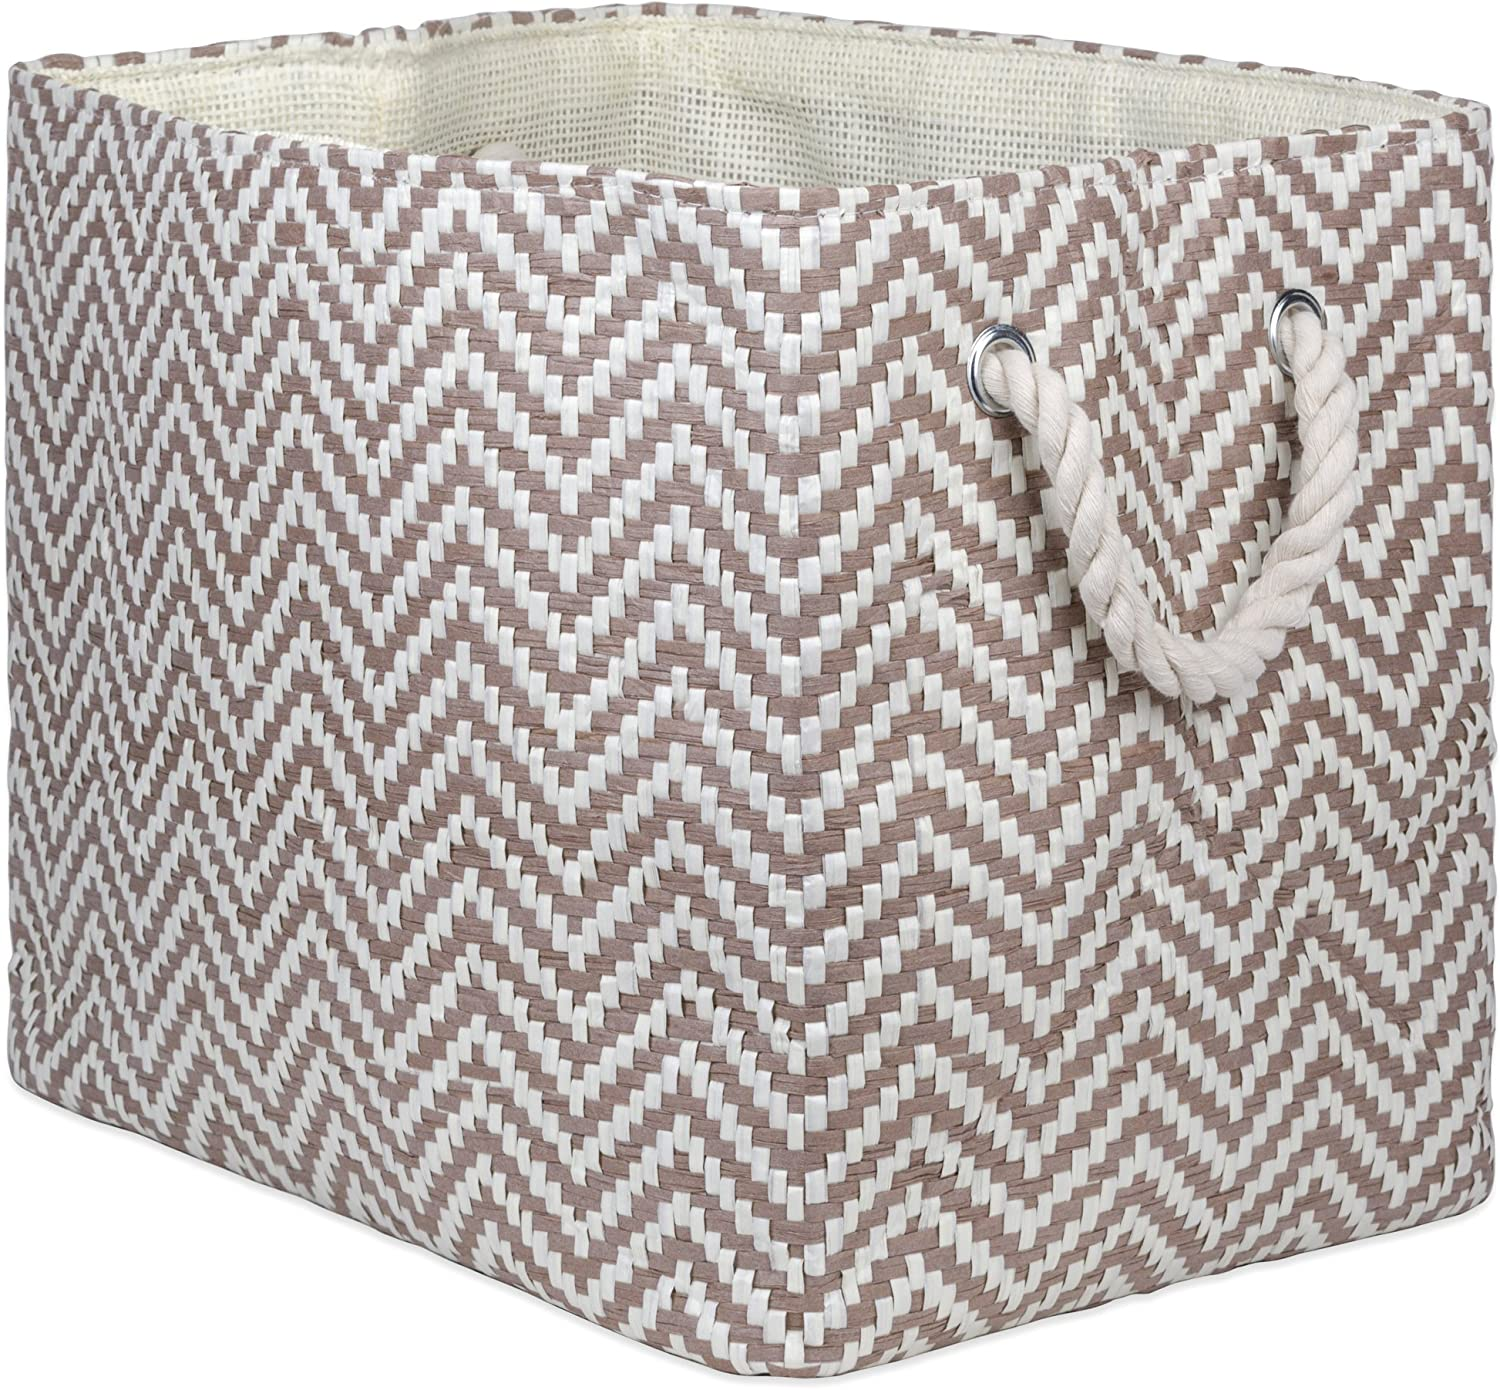 "DII Oversize Woven Paper Storage Basket or Bin, Collapsible & Convenient Home Organization Solution for Office, Bedroom, Closet, Toys, & Laundry (Medium - 15x10x12""), Stone Chevron"